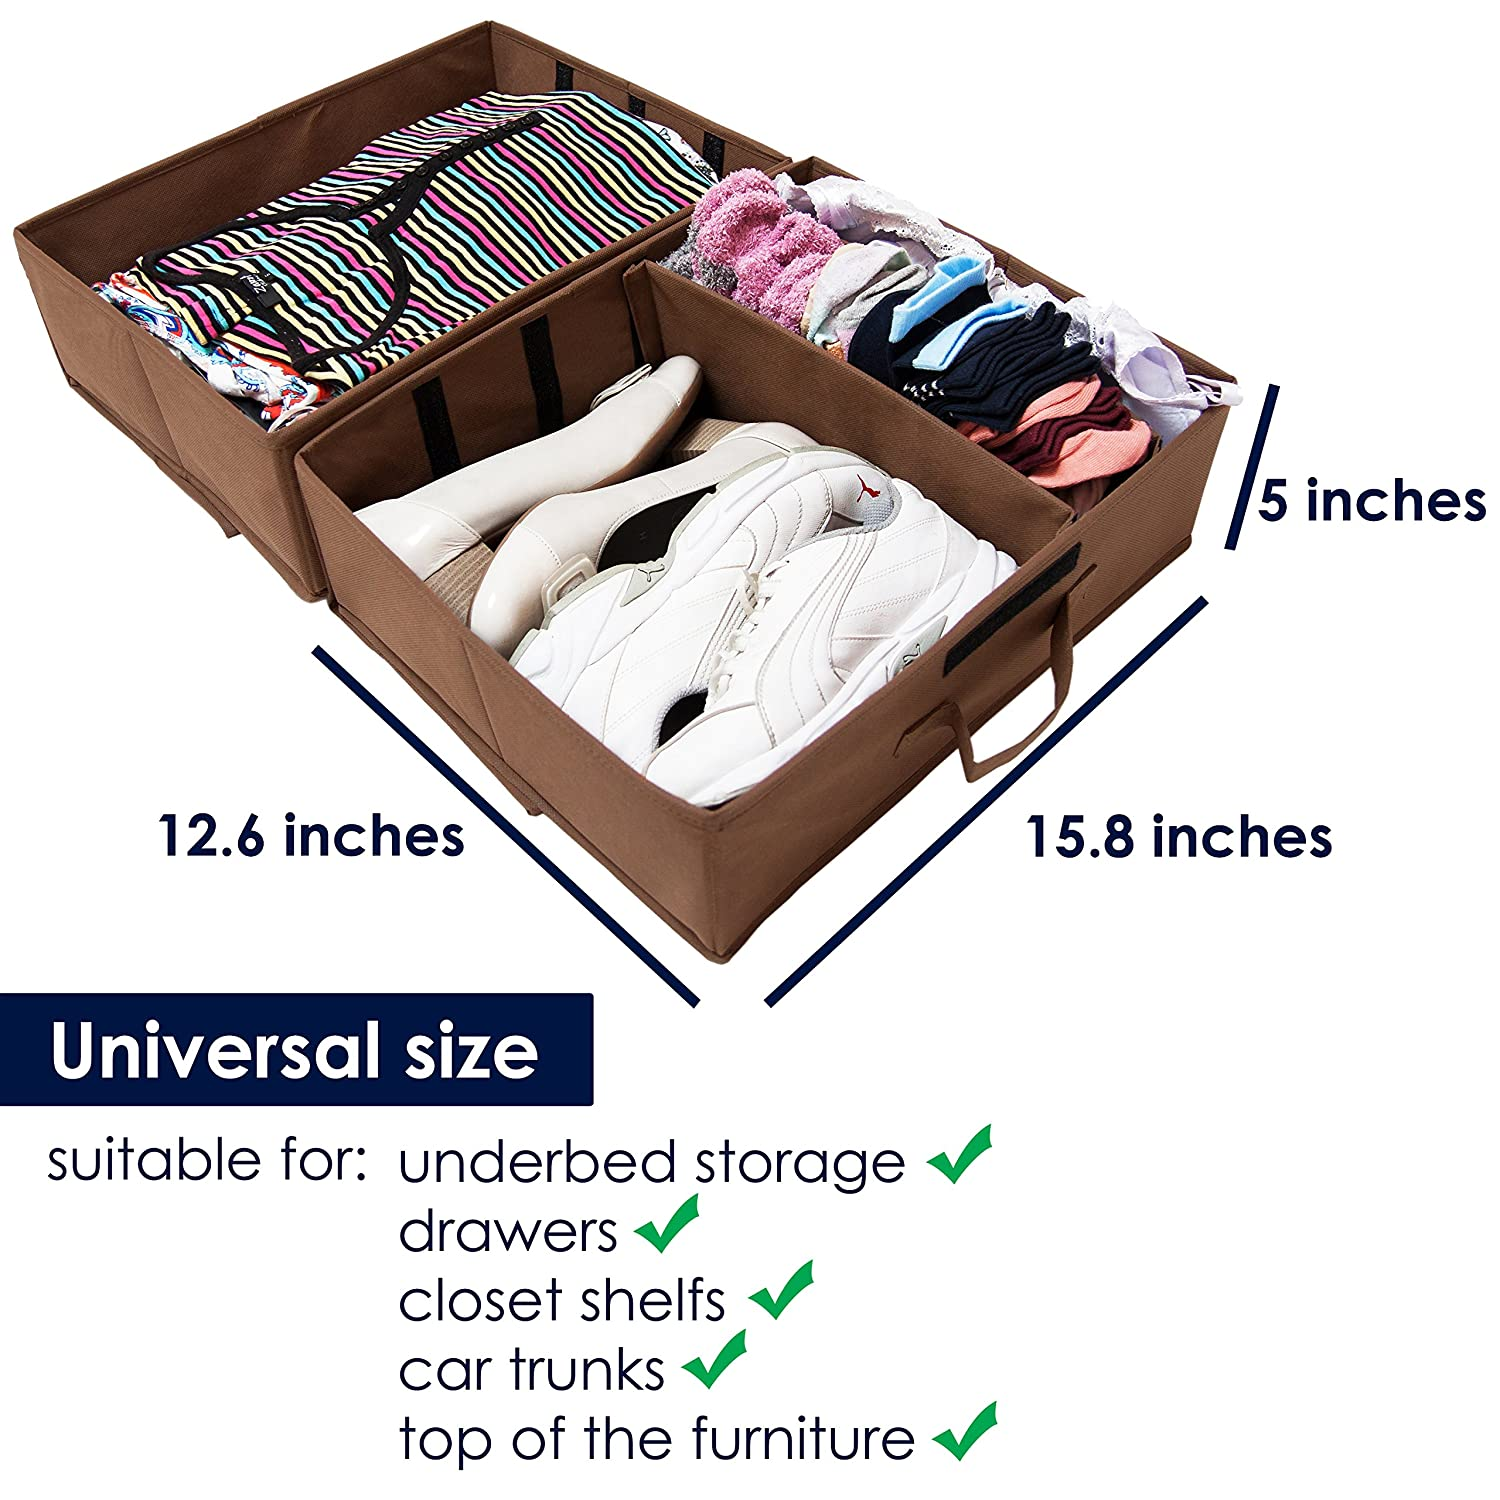 storage youtube the watch how an rolling drawer drawers home organizing box bed to build under